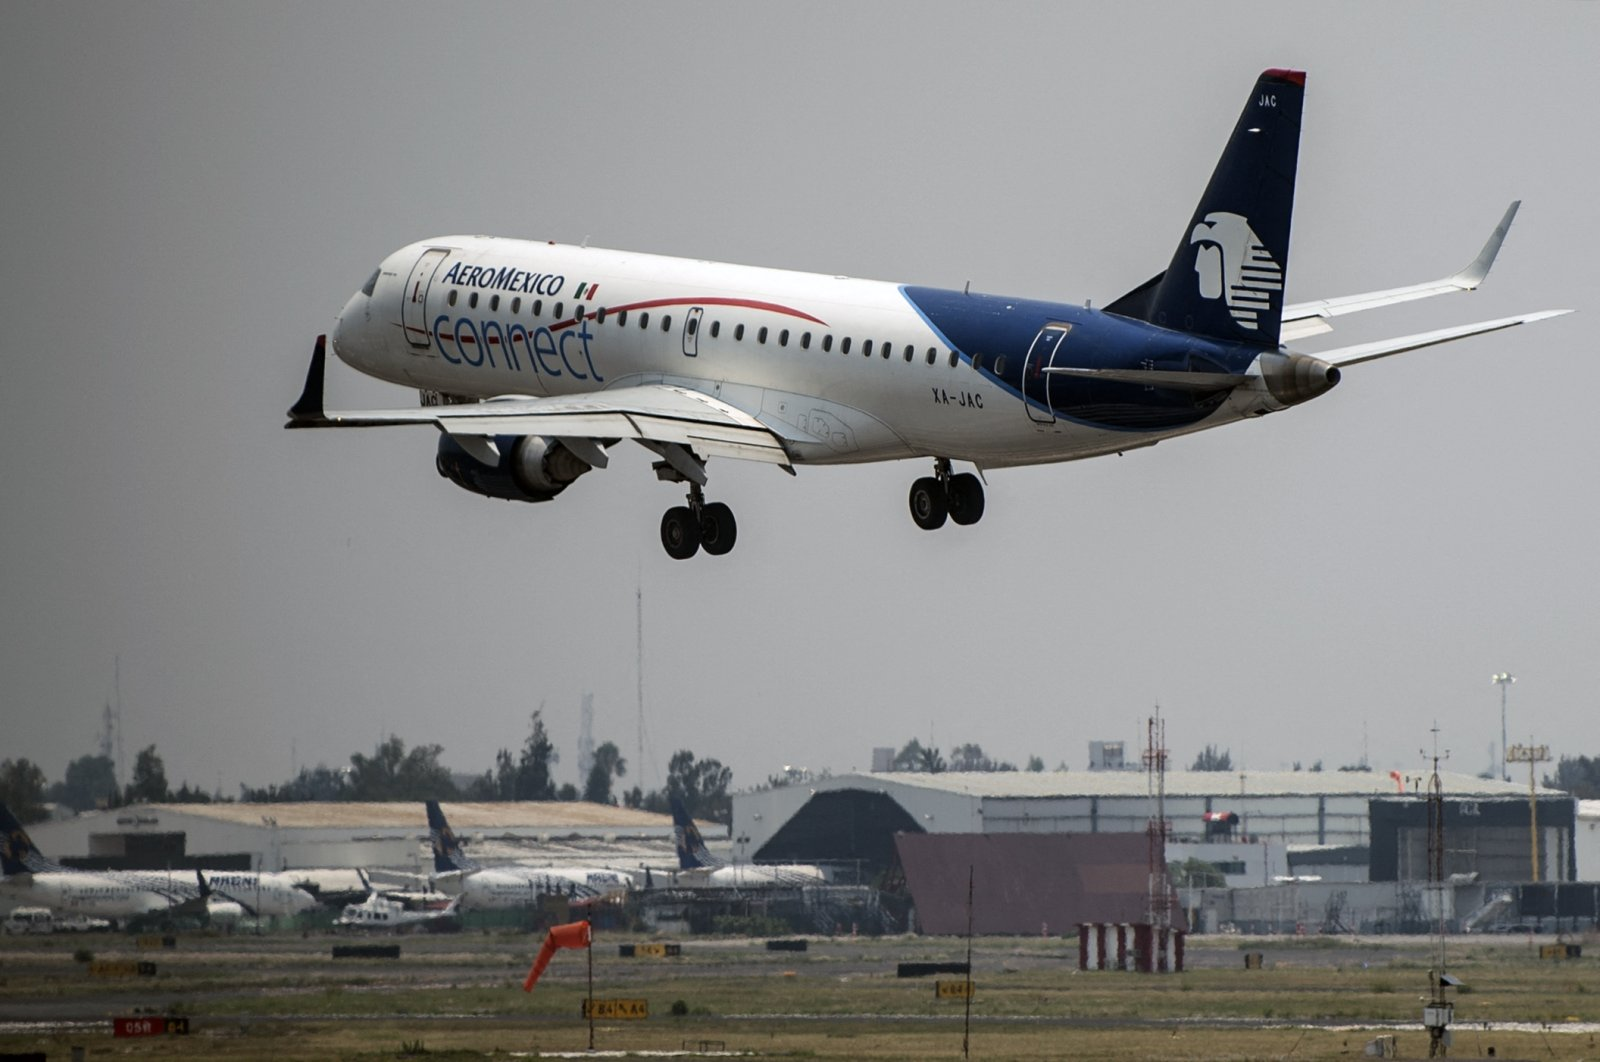 An Aeromexico plane lands at the Benito Juarez International airport, in Mexico City, Mexico, May 20, 2020. (AFP Photo)